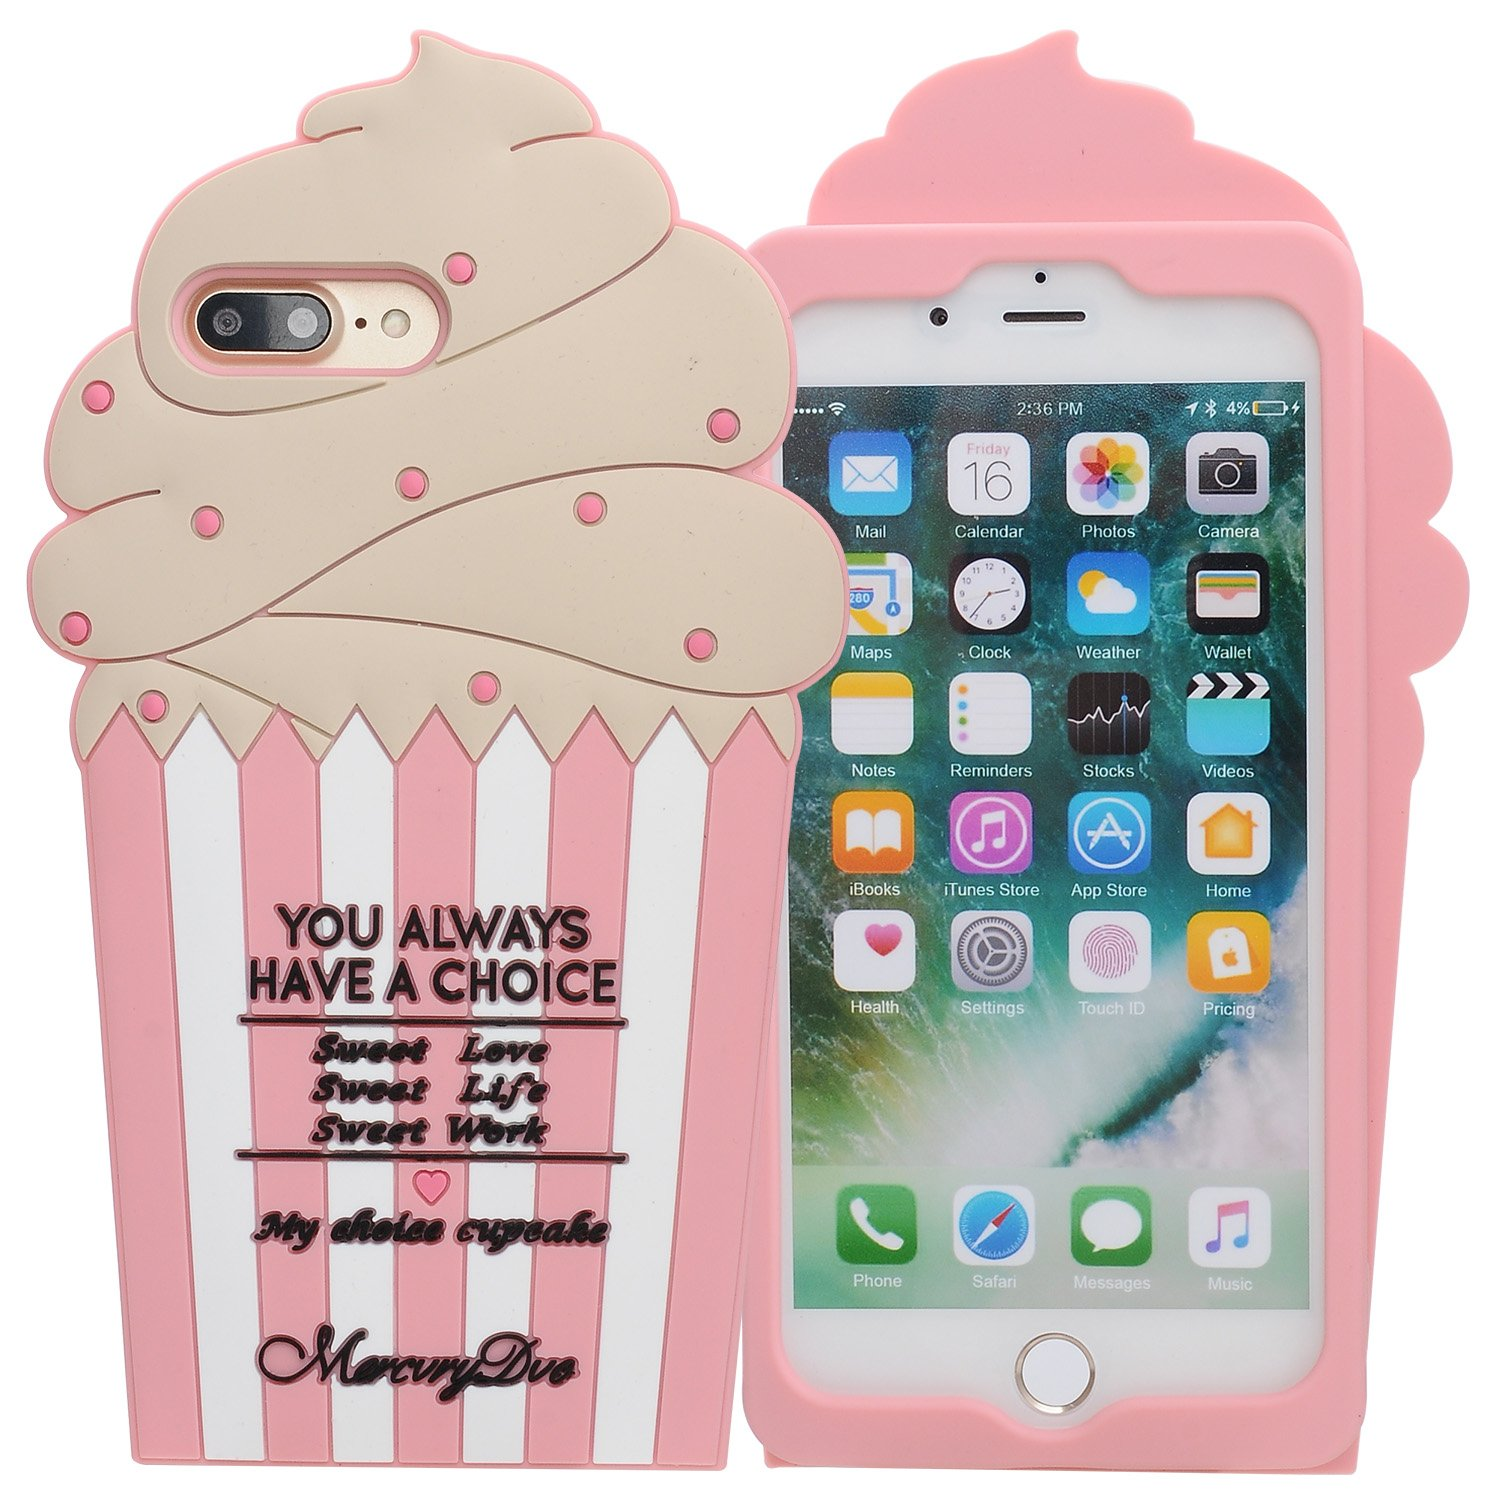 I Phone 7 Plus Case, I Phone 8 Plus Case, Phenix Color 3 D Cute Cartoon Soft Silicone Hello Kitty Gel Back Cover Case For Apple I Phone 7 Plus 2016 / I Phone 8 Plus 2017 Case Amp Prime (94) by Phenix Color